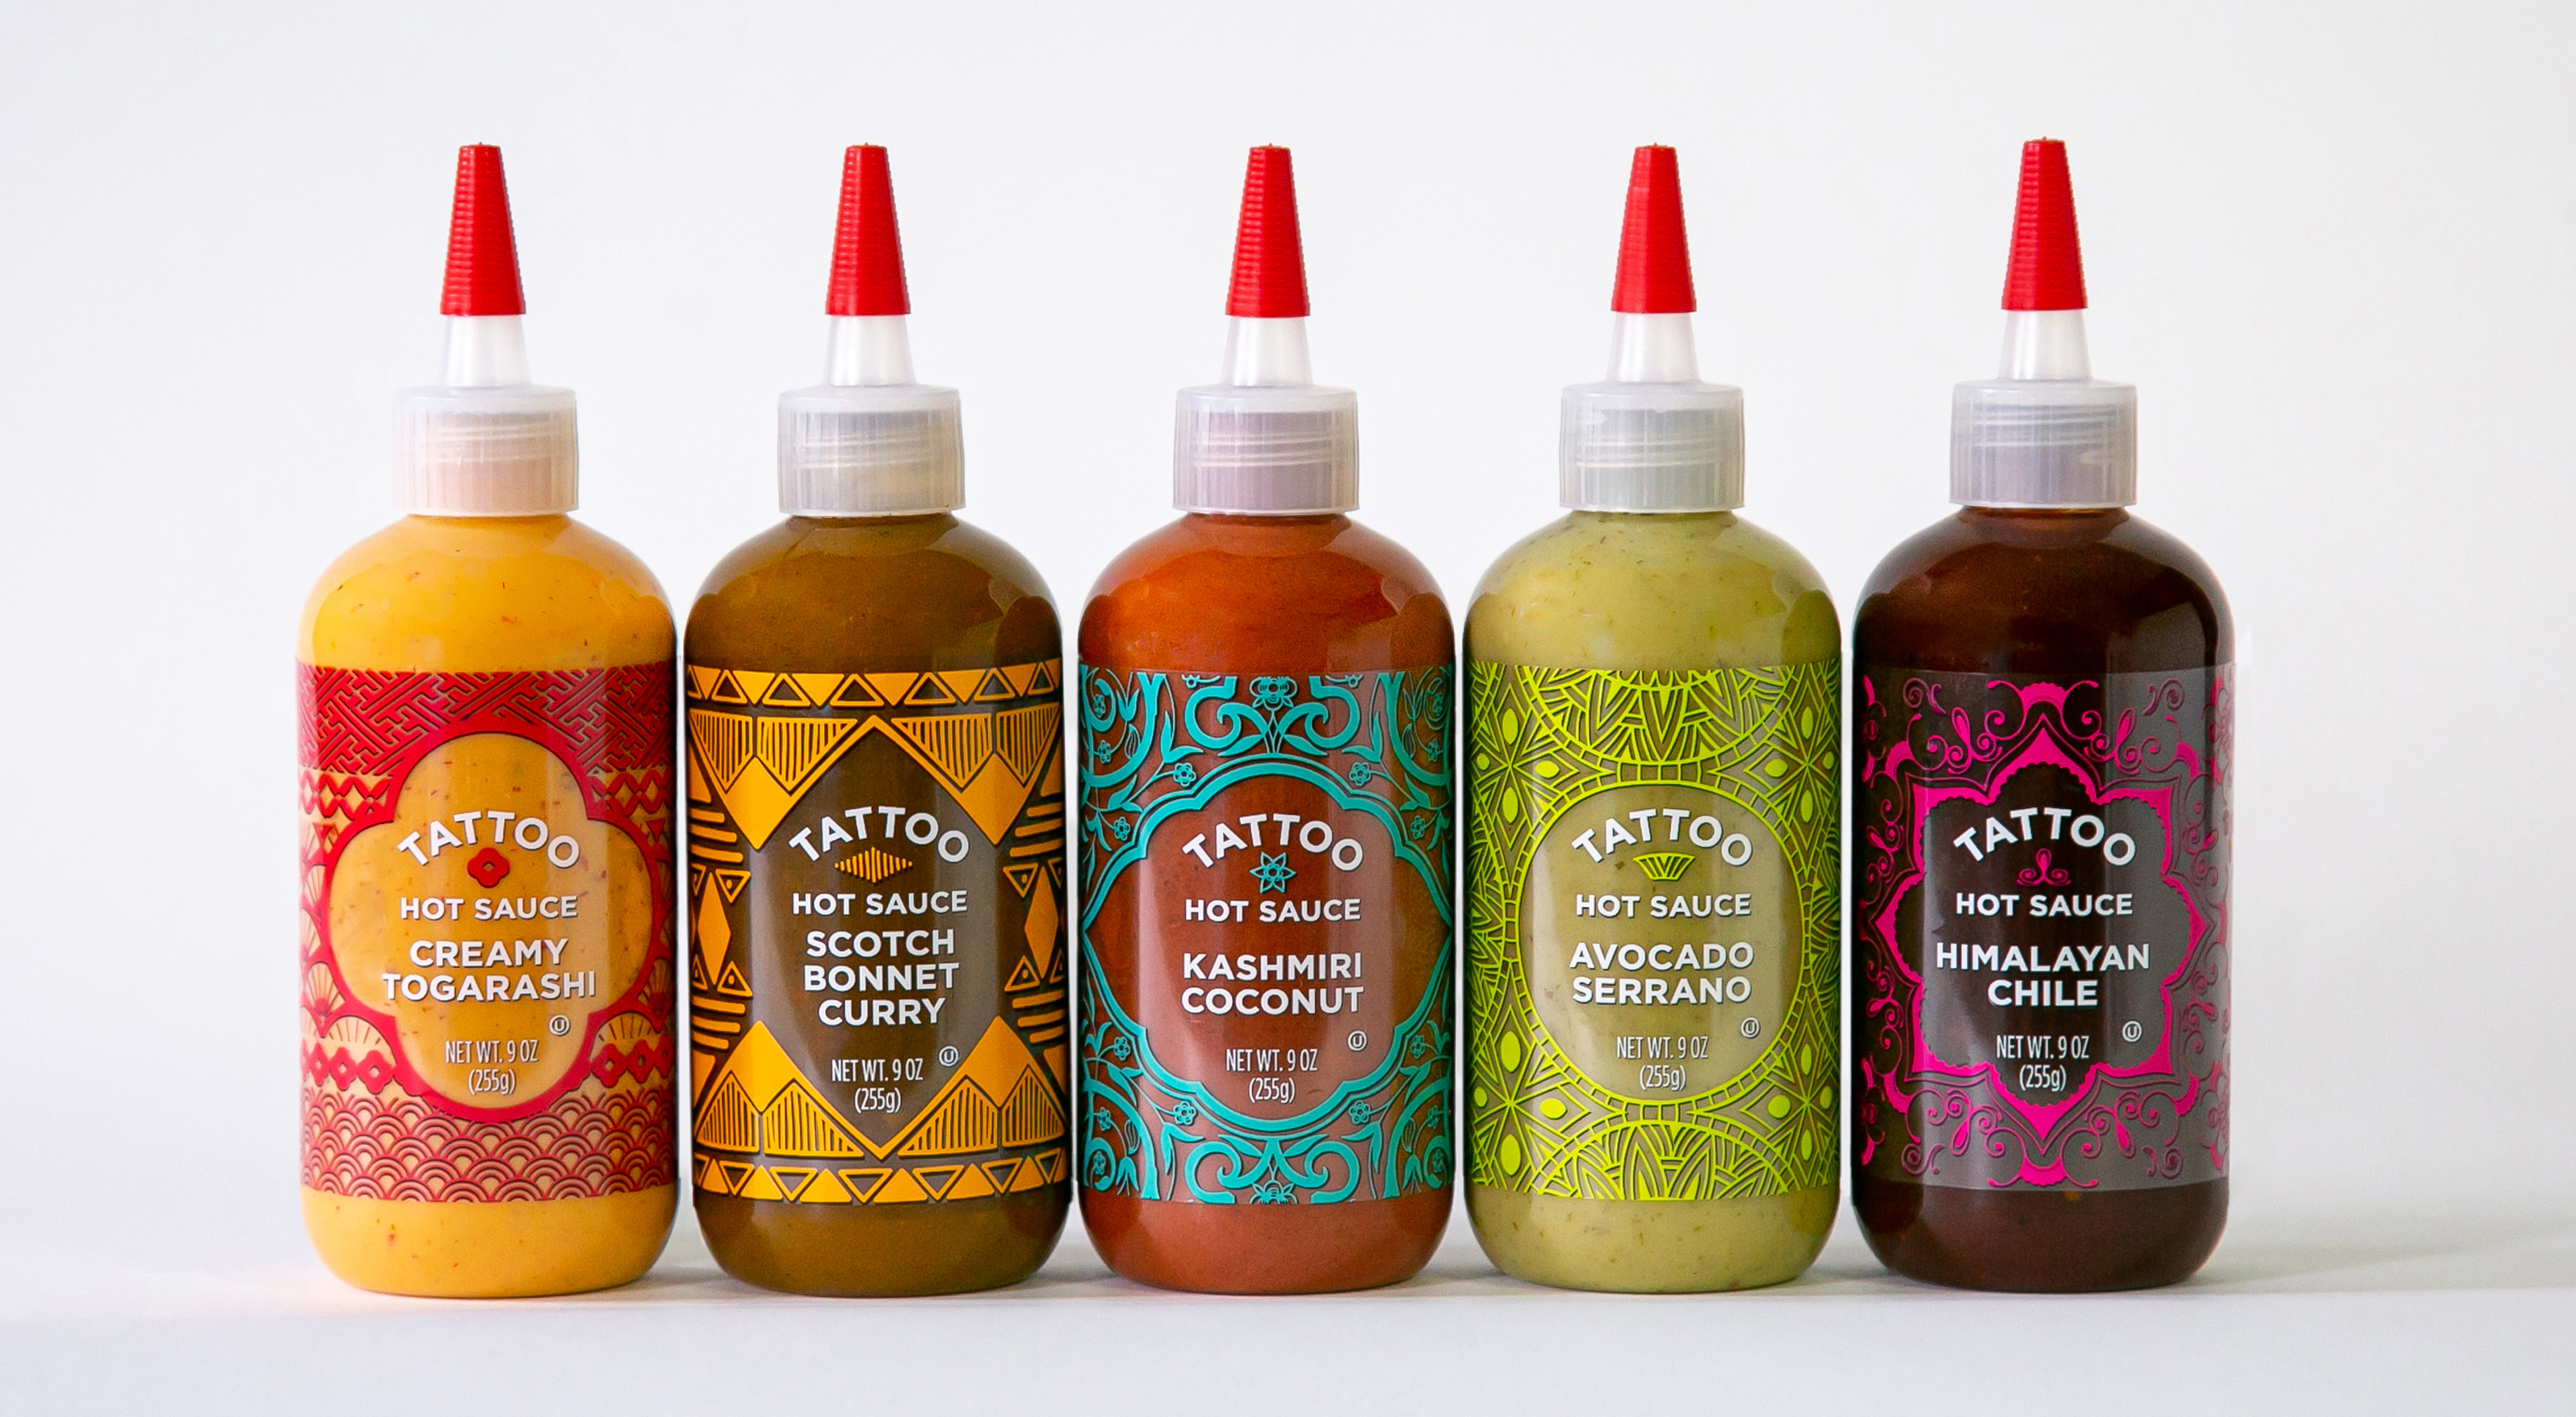 photo of Tattoo sauces branding and package design